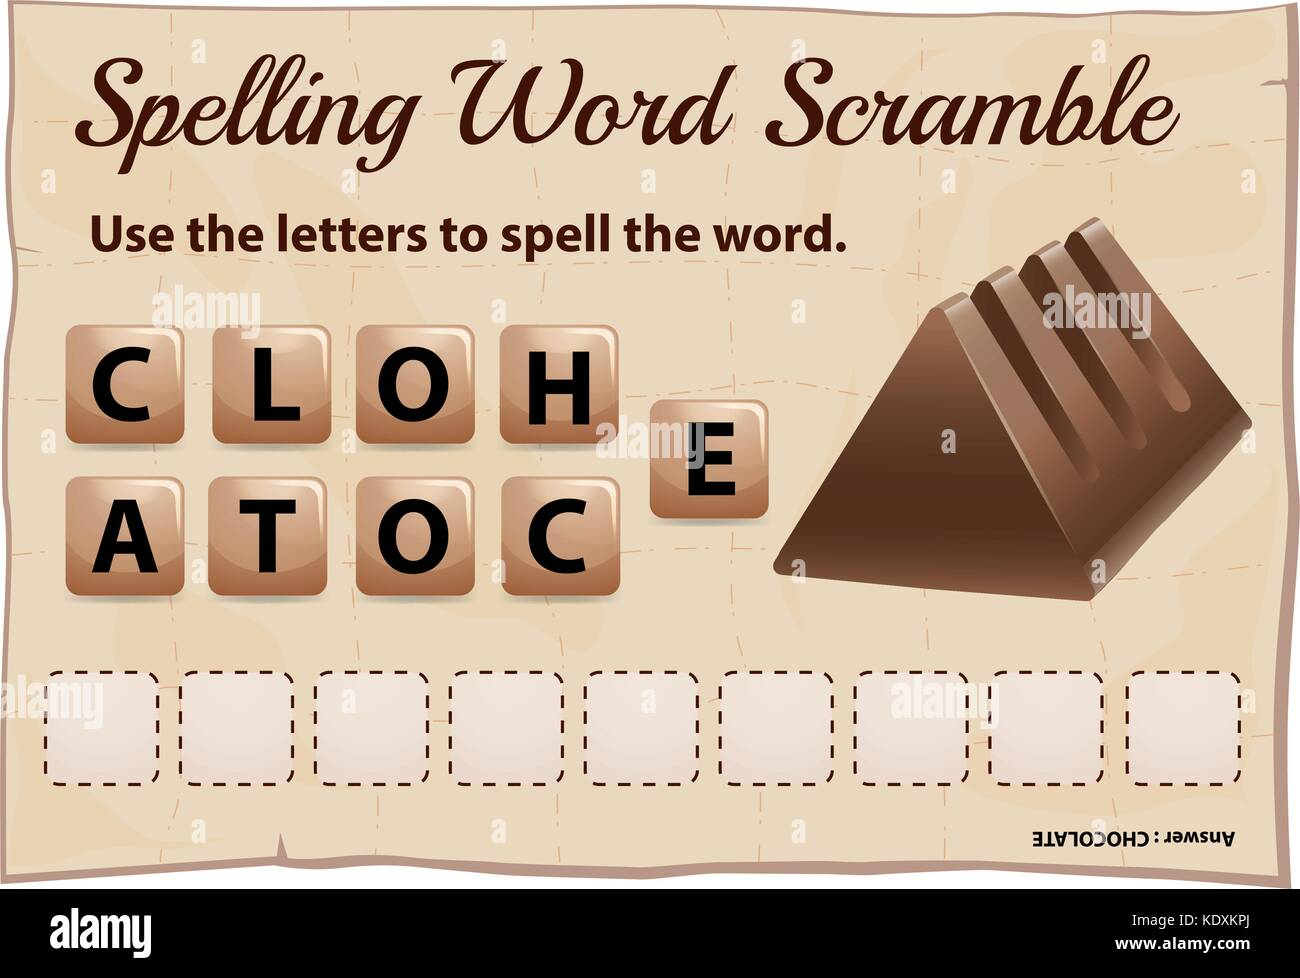 Spelling scramble game template for chocolate illustration - Stock Vector